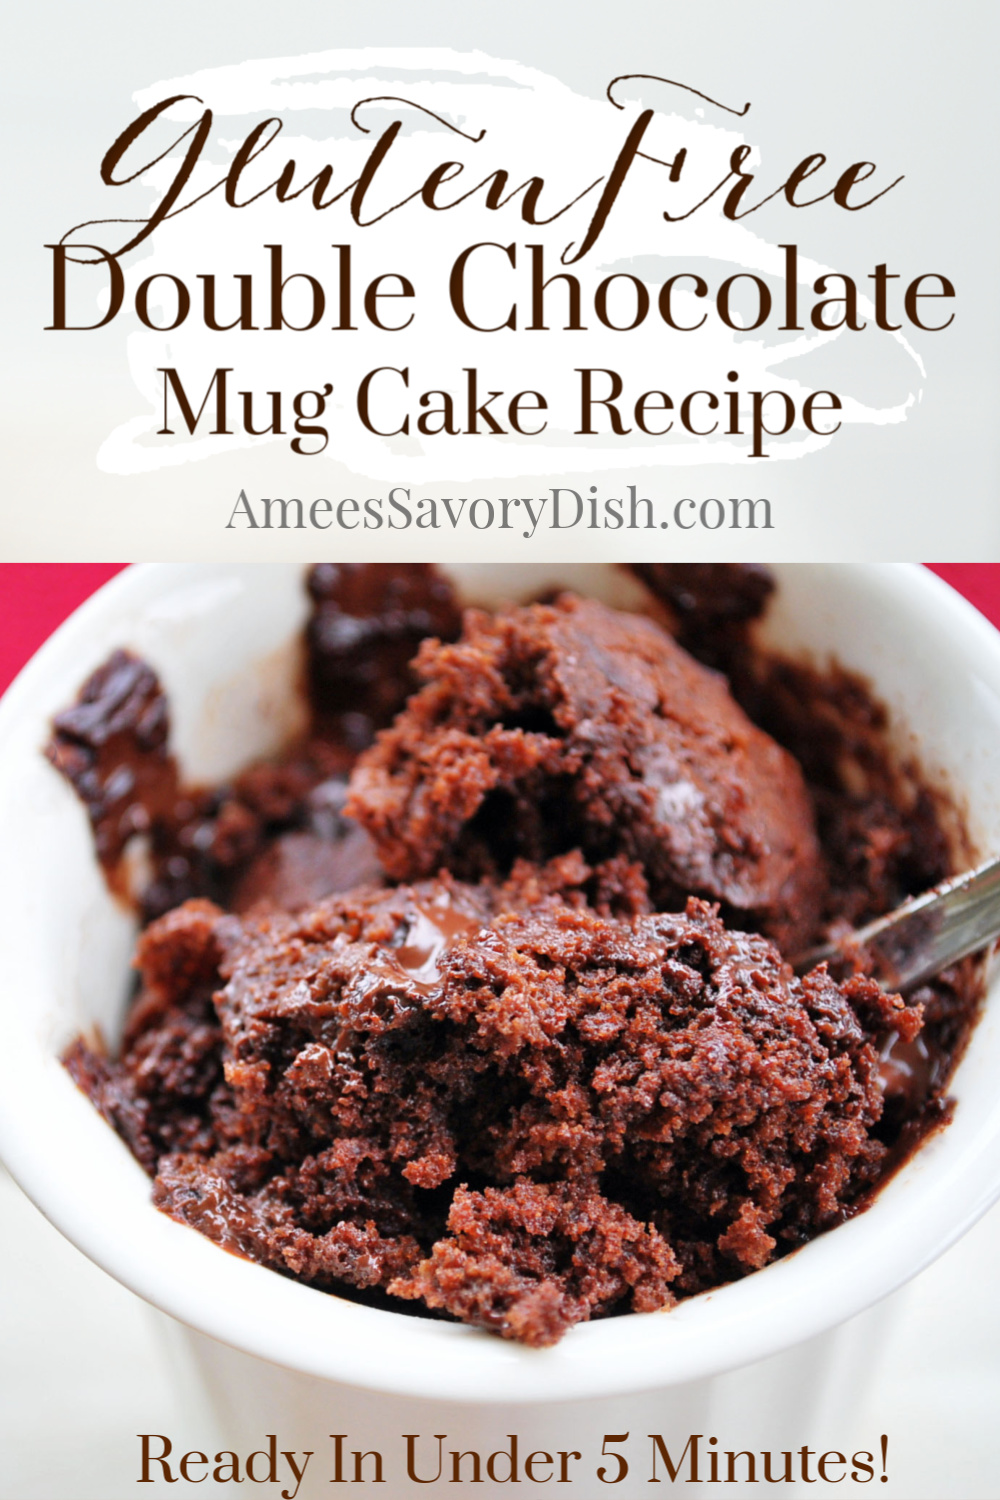 Double chocolate gluten-free mug cake is a quick and easy microwaveable dessert. This simple mug cake recipe is a decadent dessert that comes together in less than 5 minutes! #mugcake #glutenfreemugcake #glutenfreecake #chocolatemugcake via @Ameessavorydish